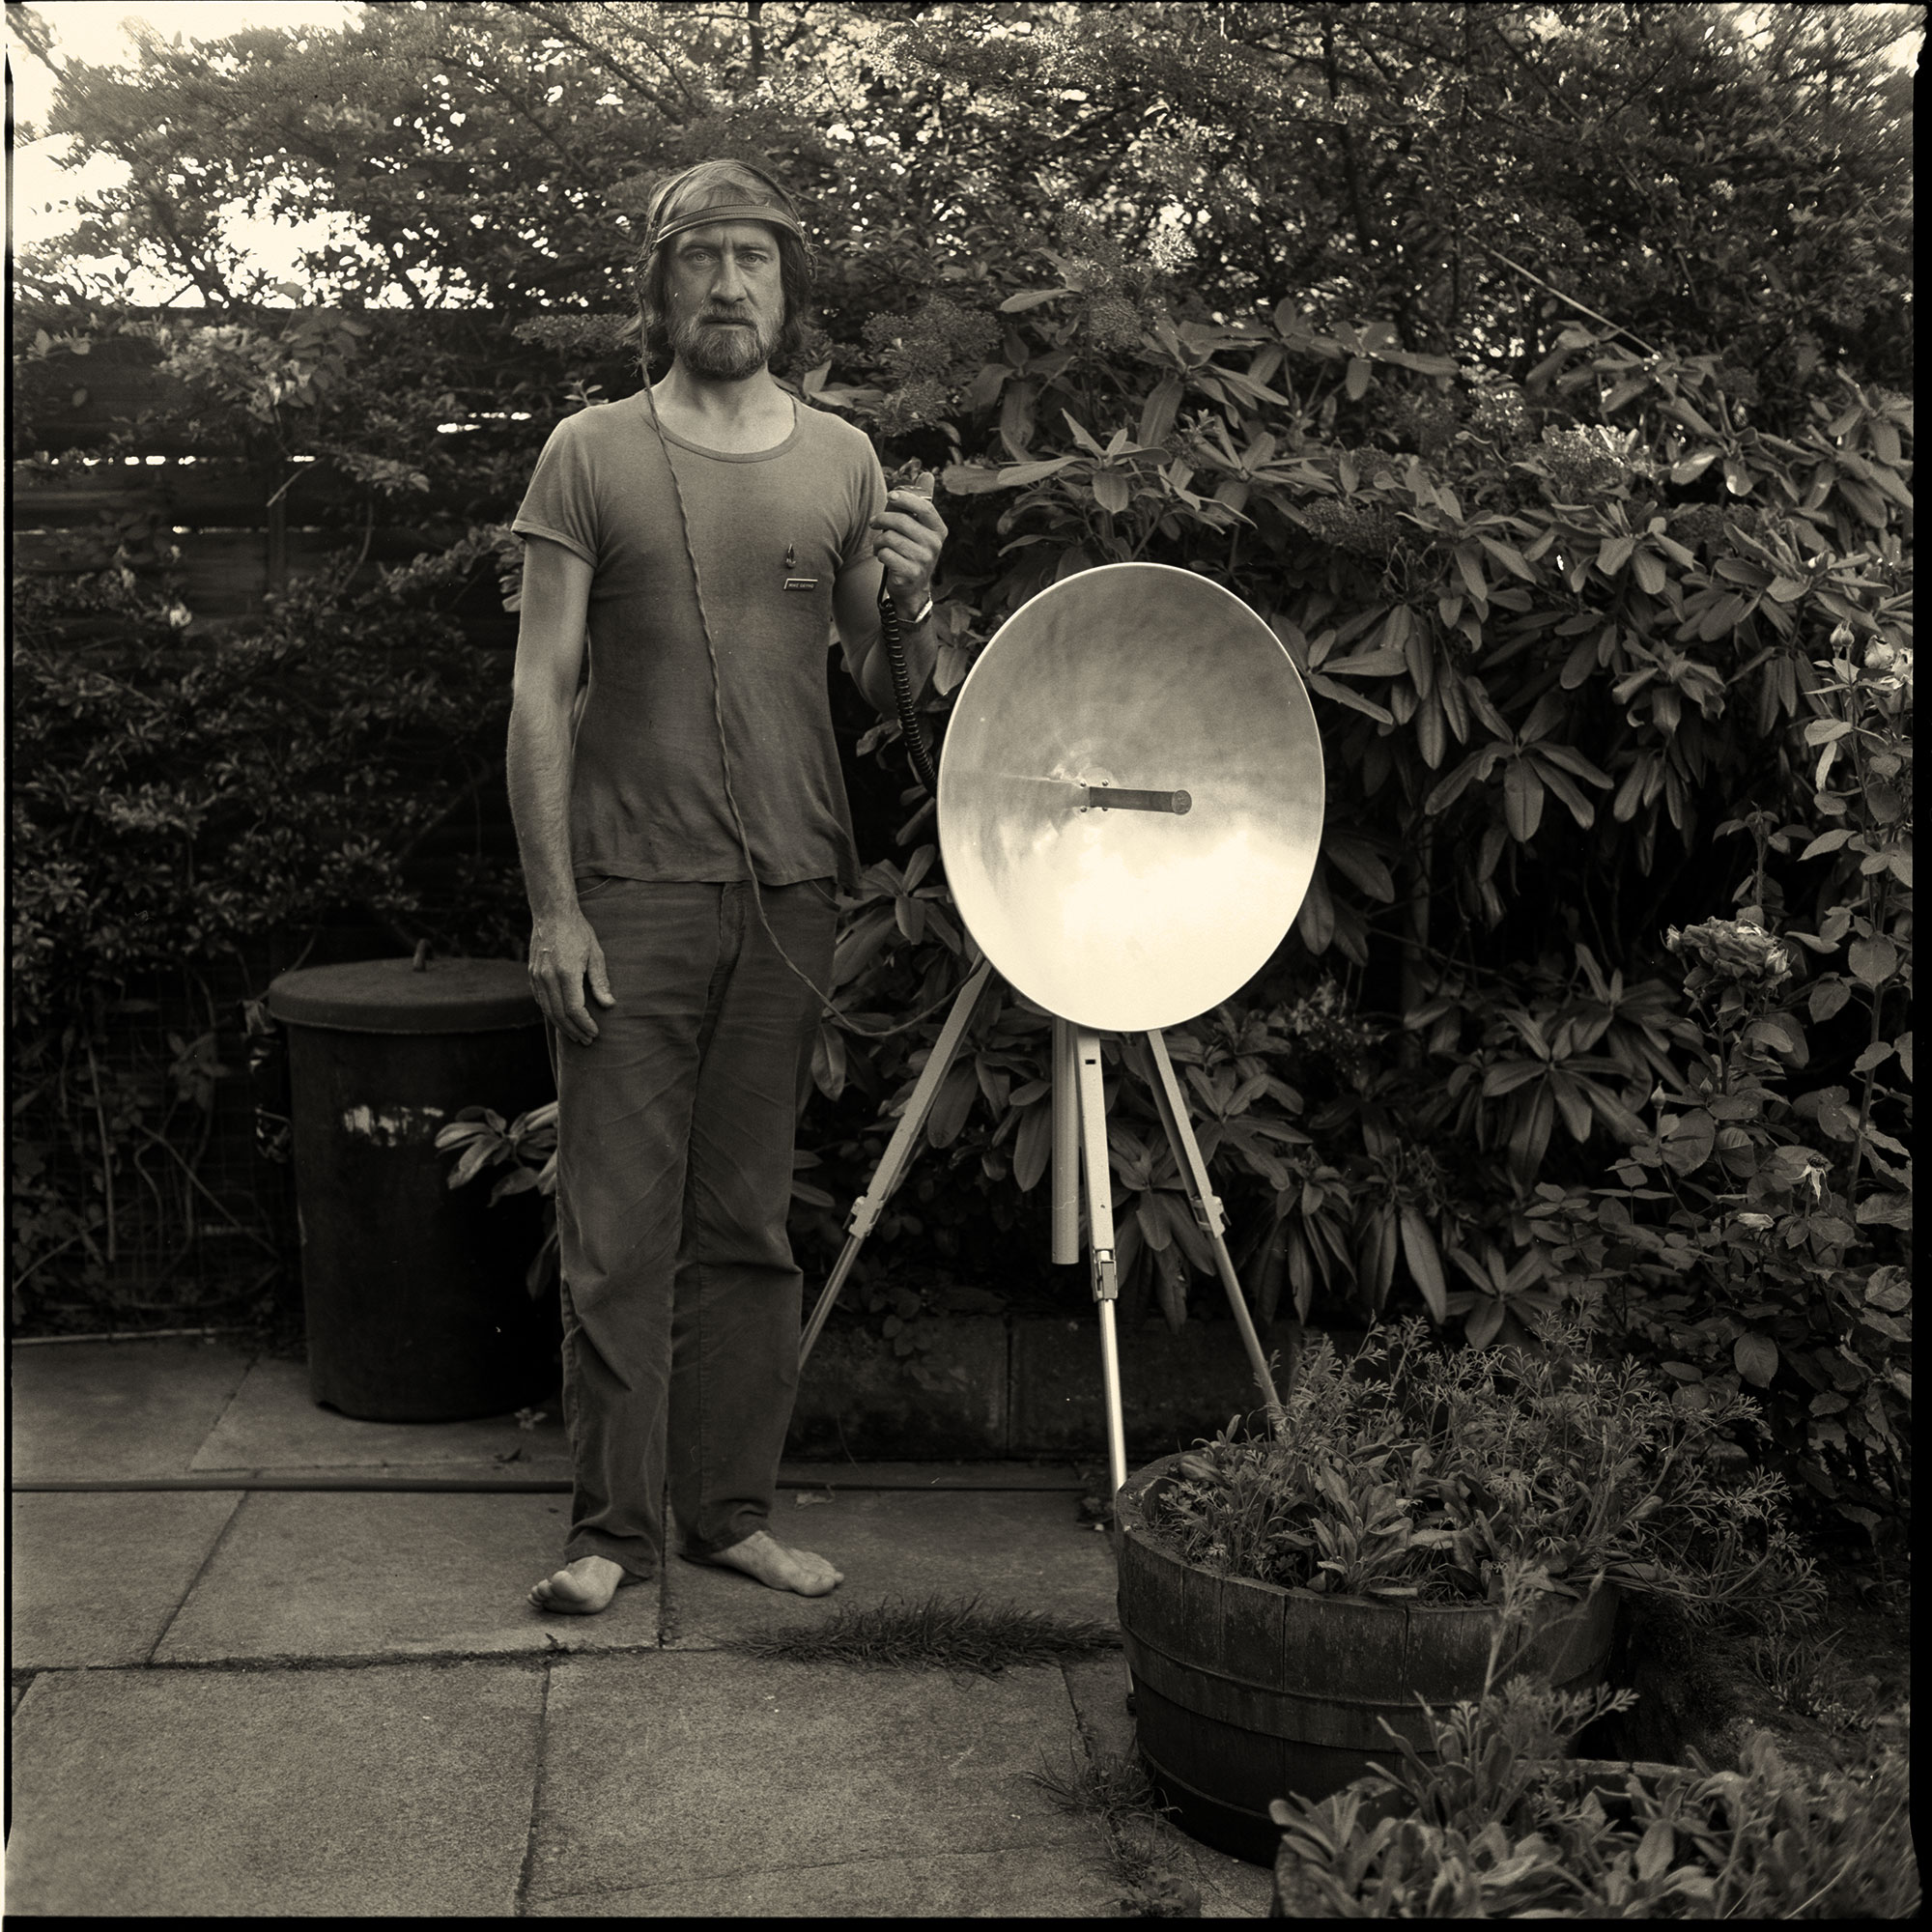 Man With Microwave Transmitter